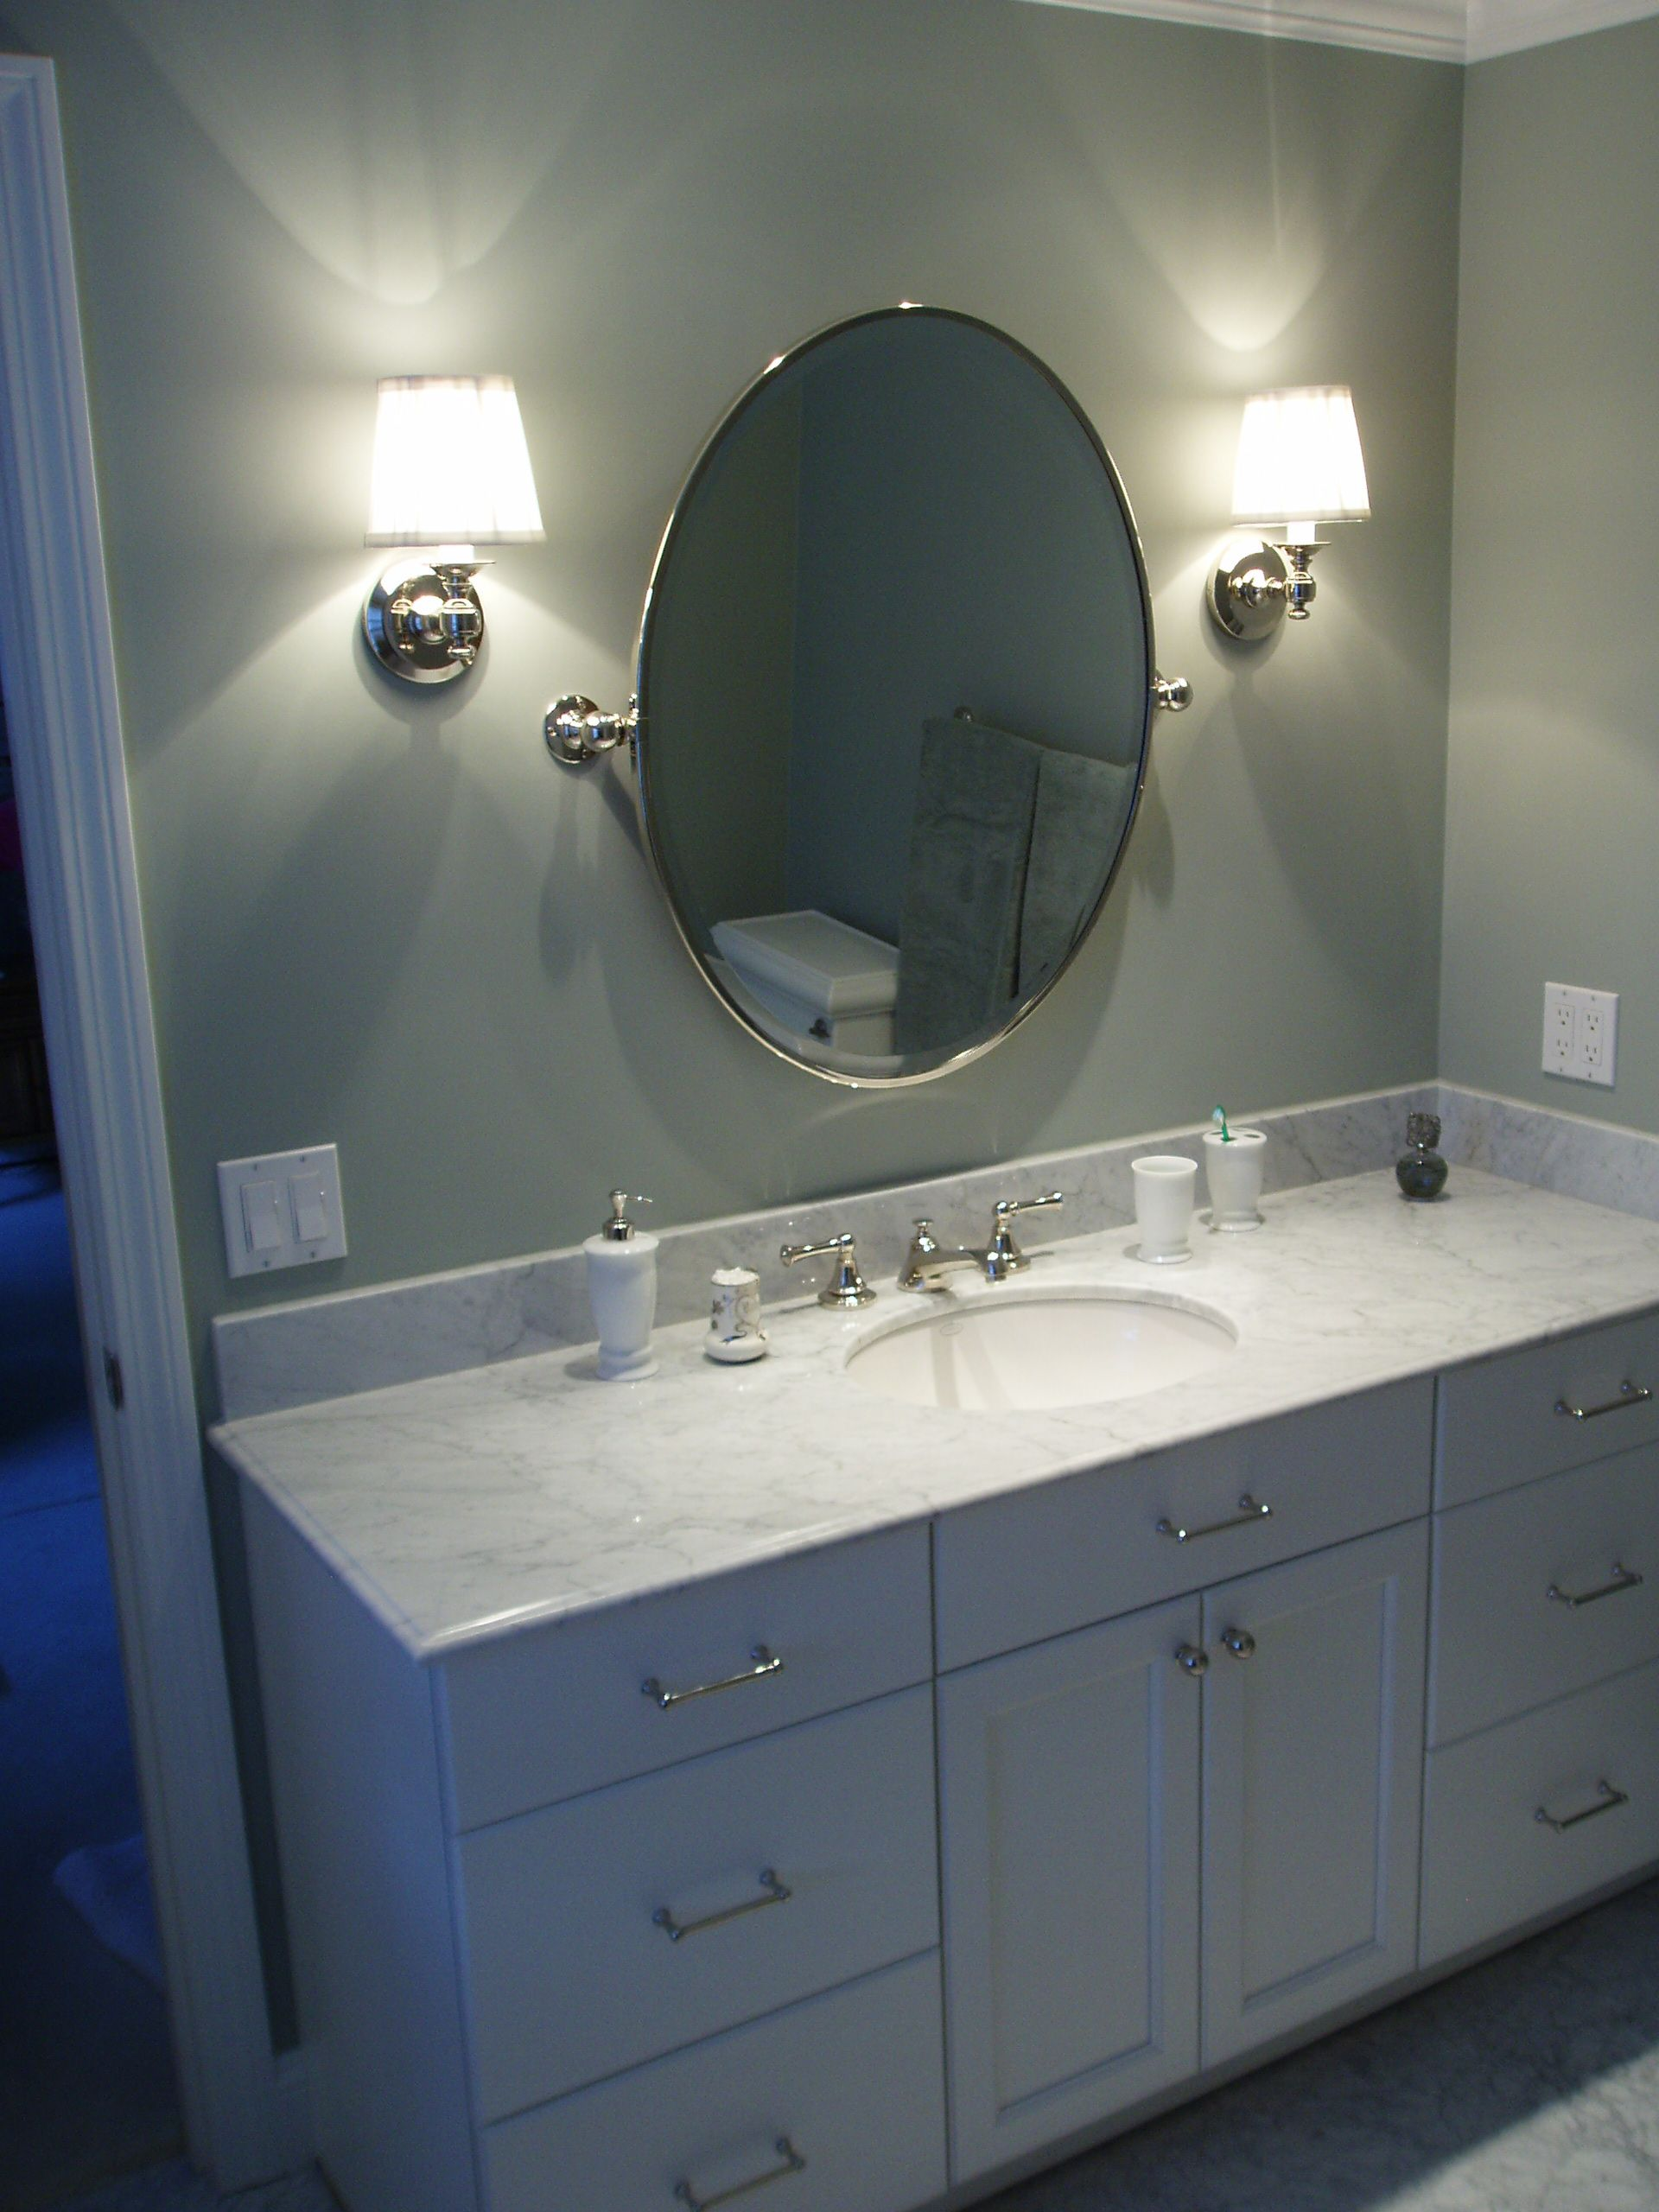 Classic bathroom vanity design white vanity carrera - Round mirror over bathroom vanity ...